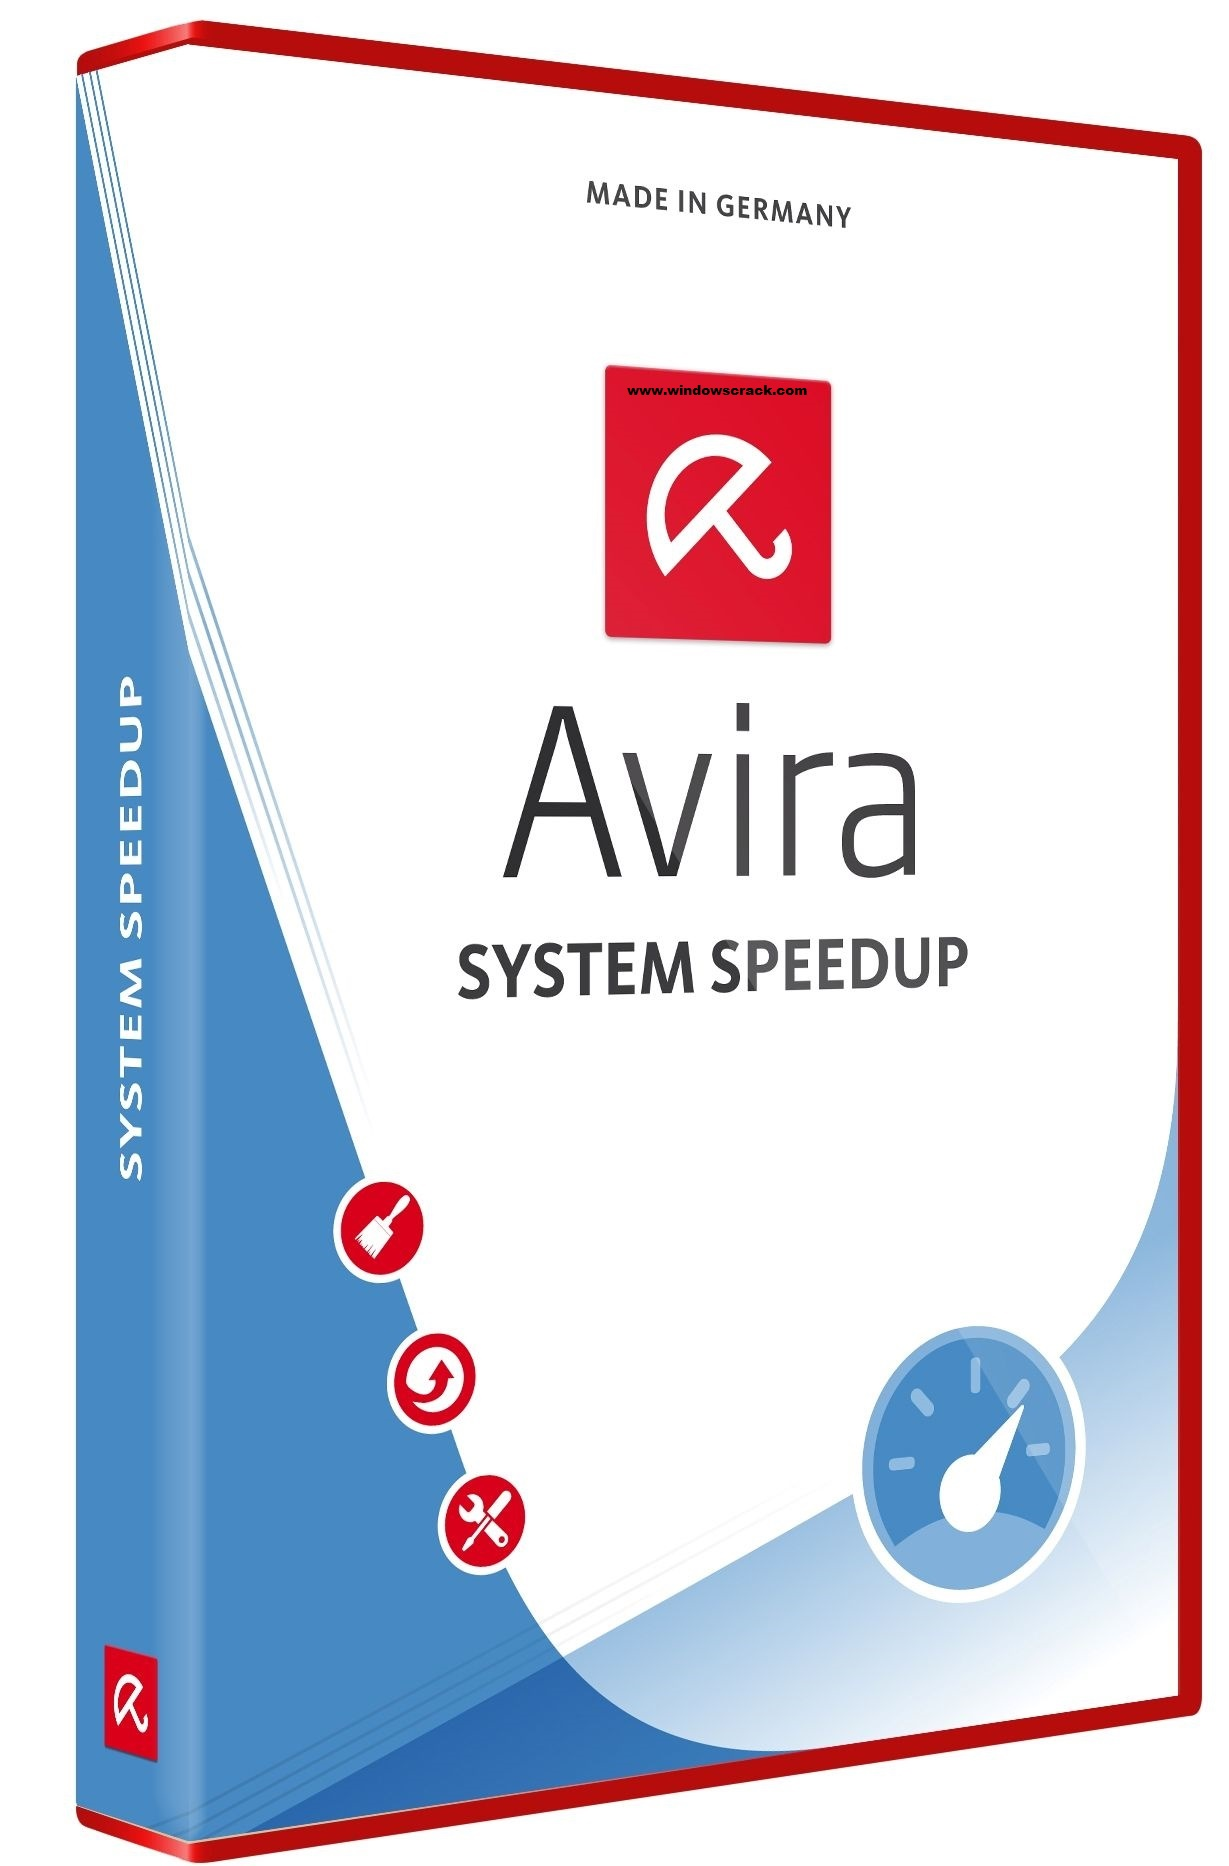 Avira System Speedup Pro 6.5.0.10950 + Crack 2020 [Latest]